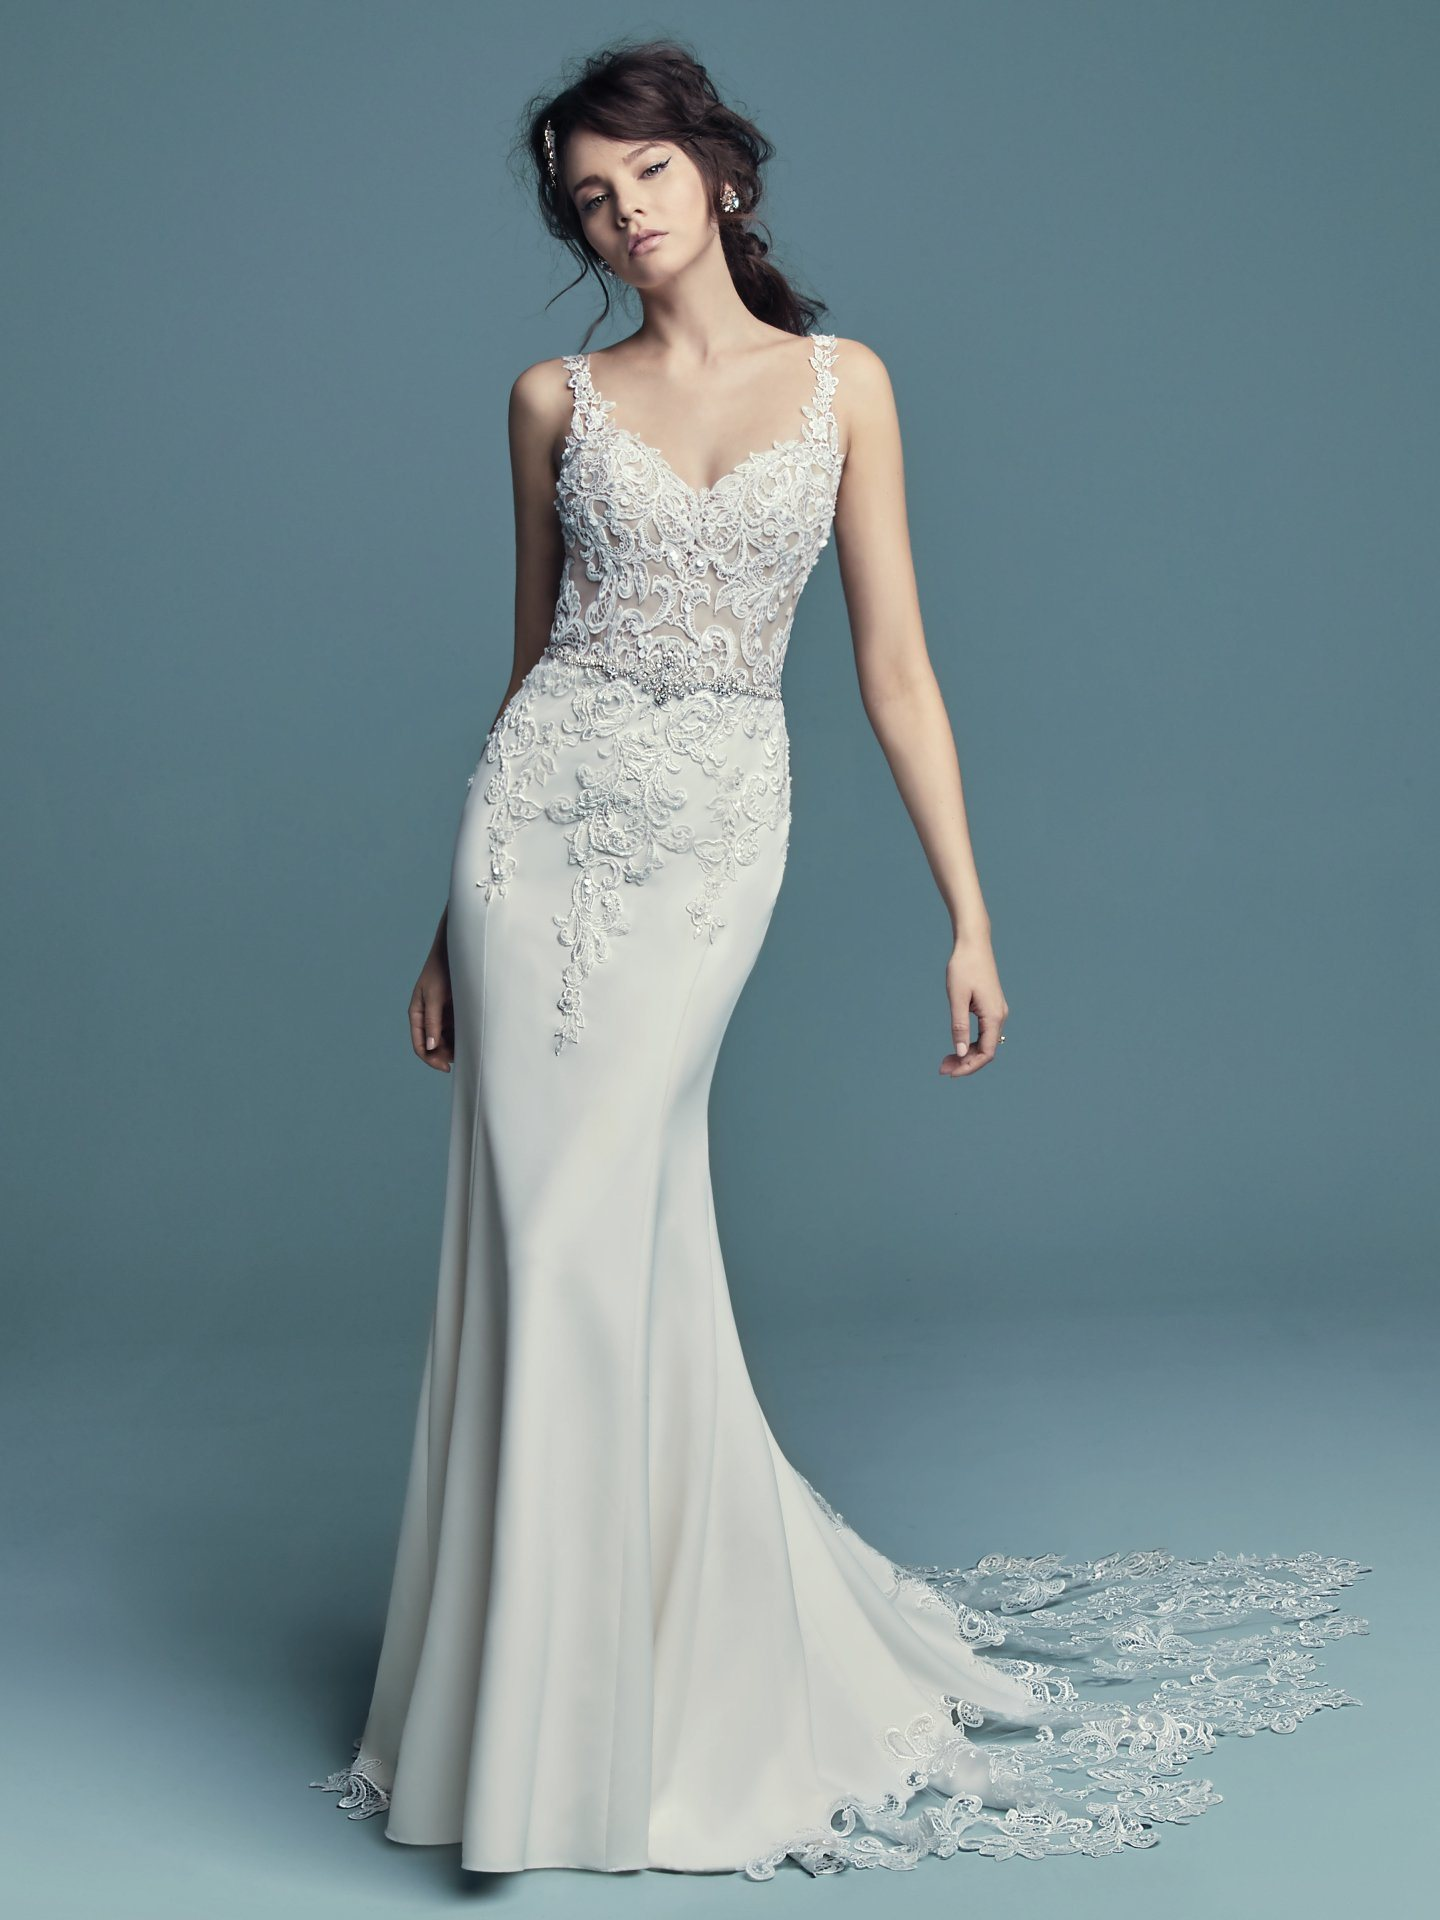 787053e4b The 21 Best Places to Shop for Affordable Wedding Dresses